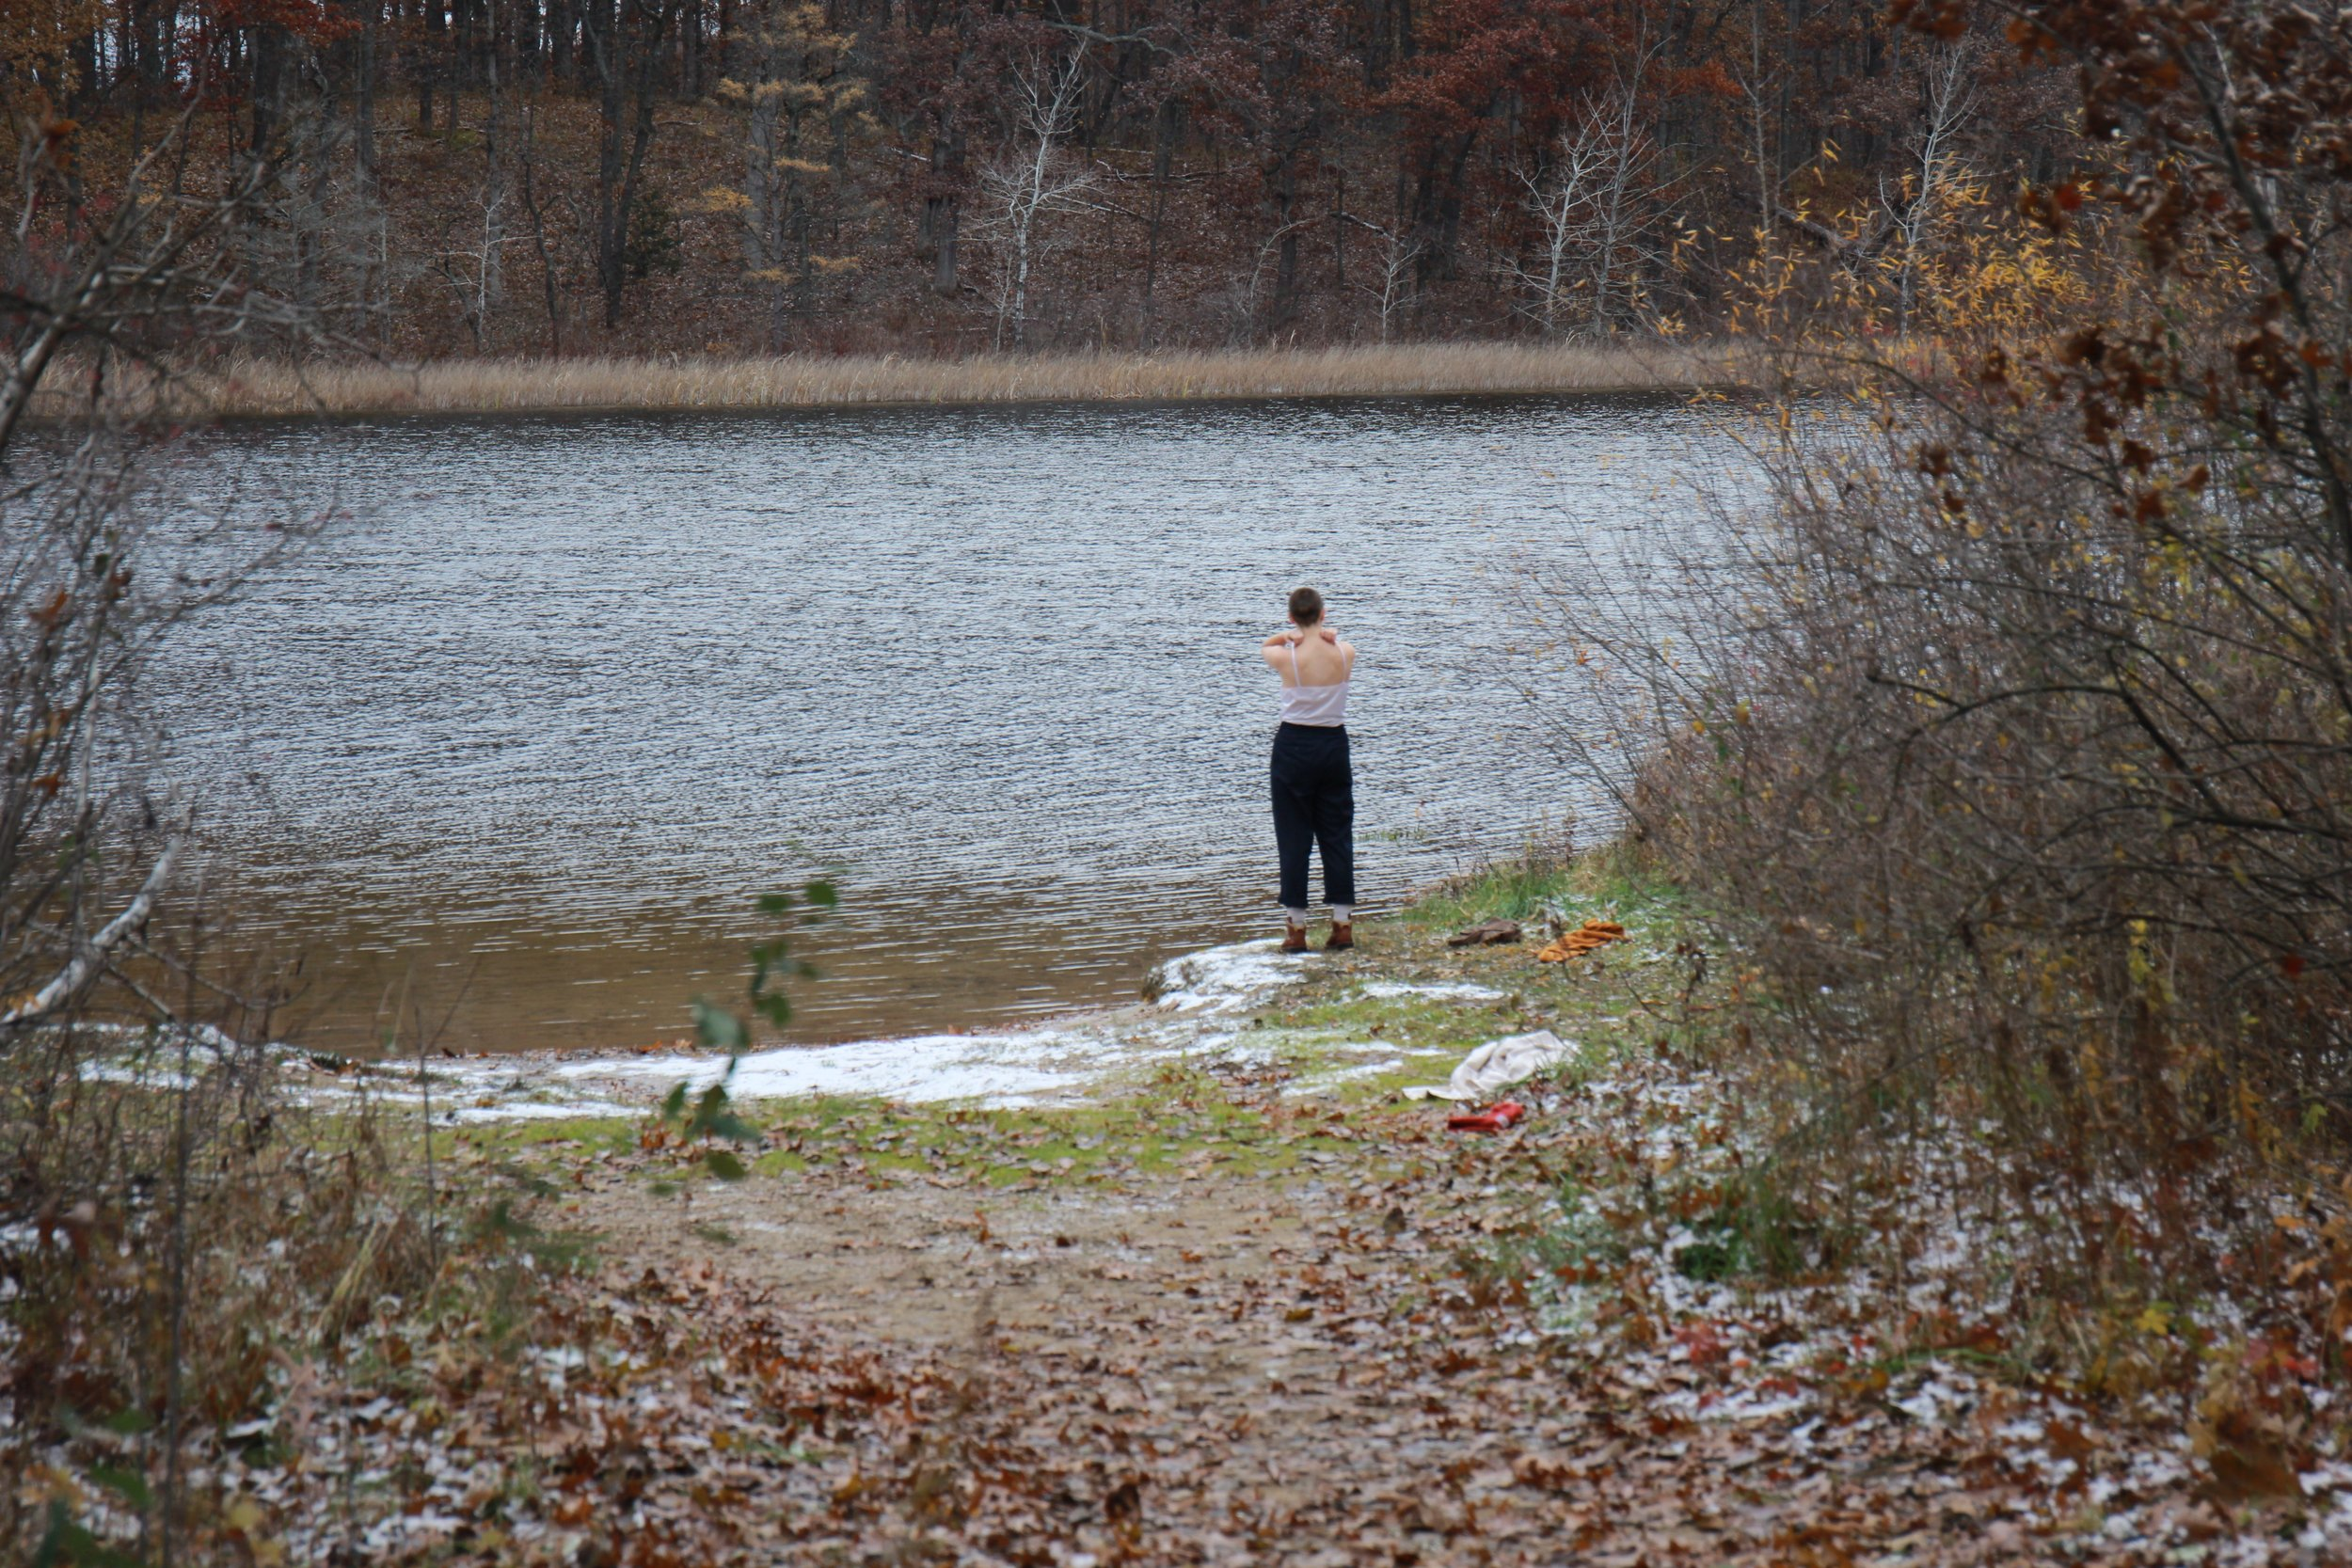 While weather changed and Shama could not go in the water, to depict sublimeness, I chose a set in between seasons as a symbol of the character's liminality and contemplation through transition.